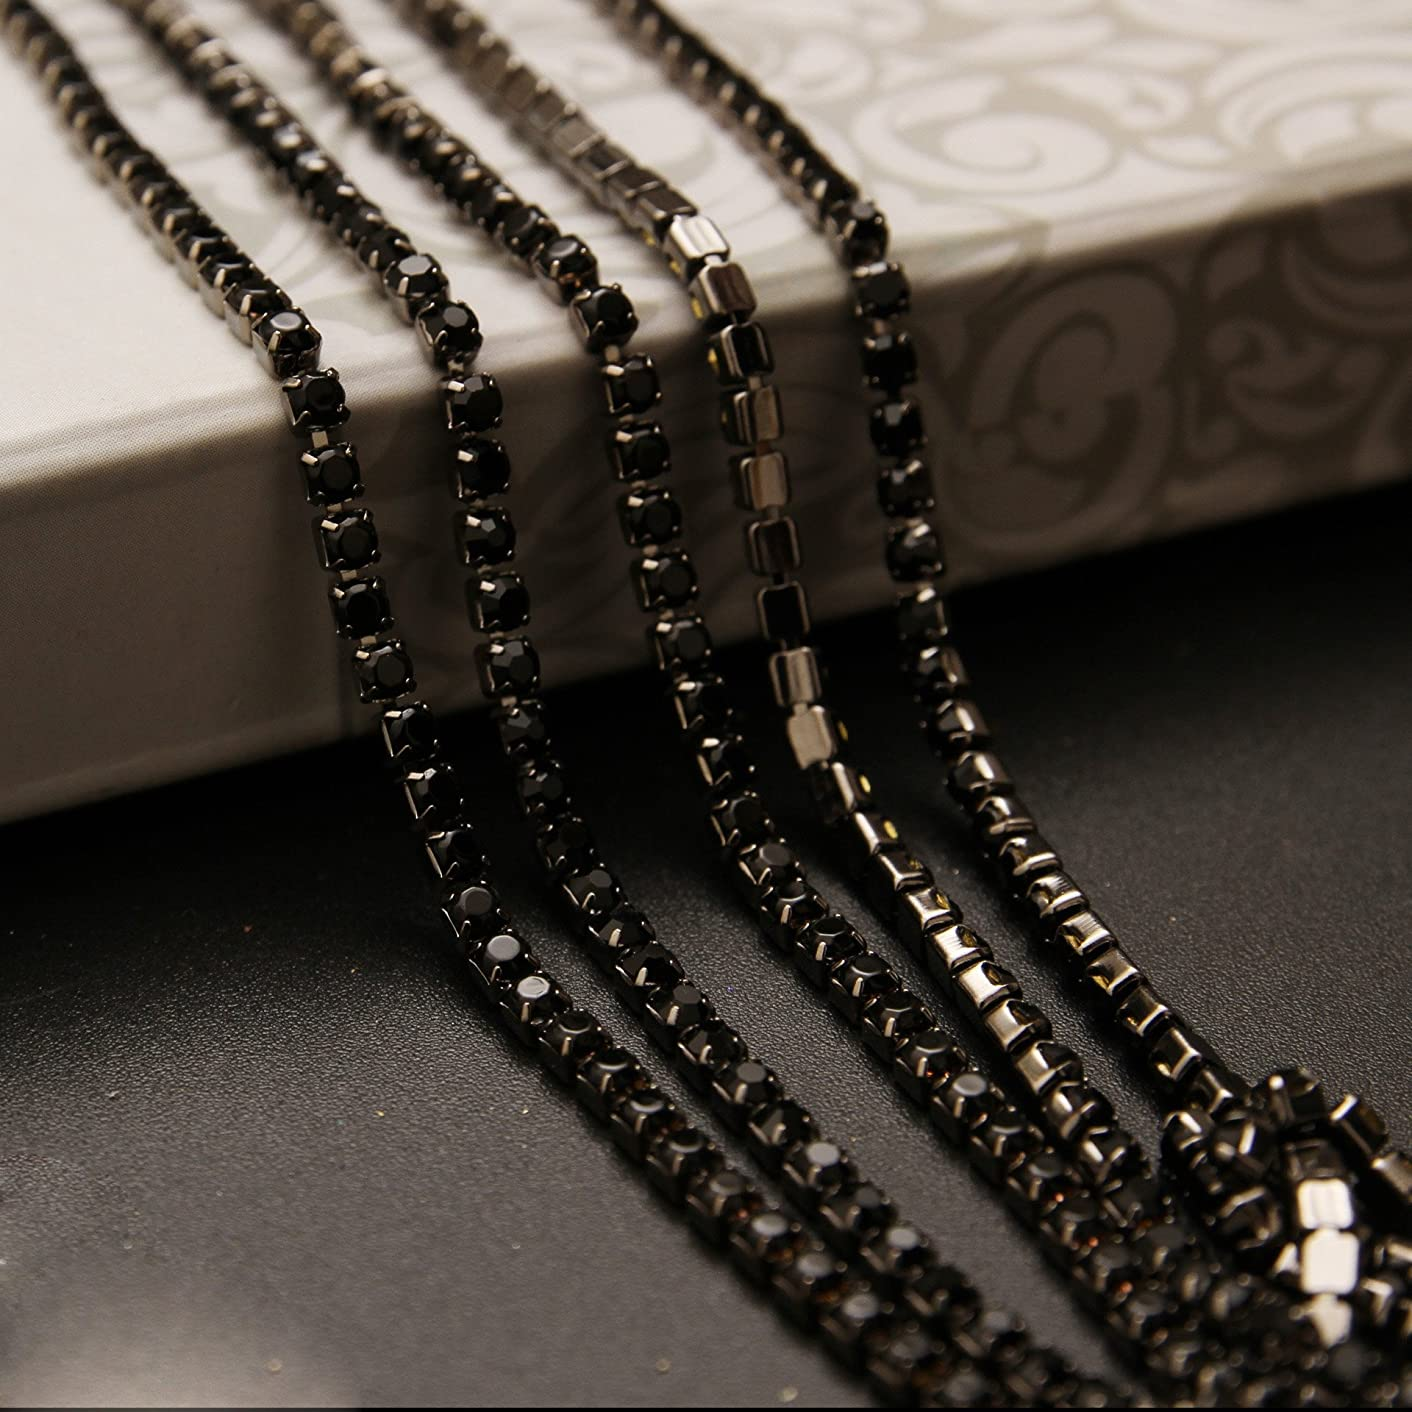 USIX 10 Yards Crystal Rhinestone Close Chain Trimming Claw Chain Multi Size Color Rhinestone Chain for DIY Arts Craft Sewing Jewelry Making, Jet-Black Chain, SS12/3.0MM